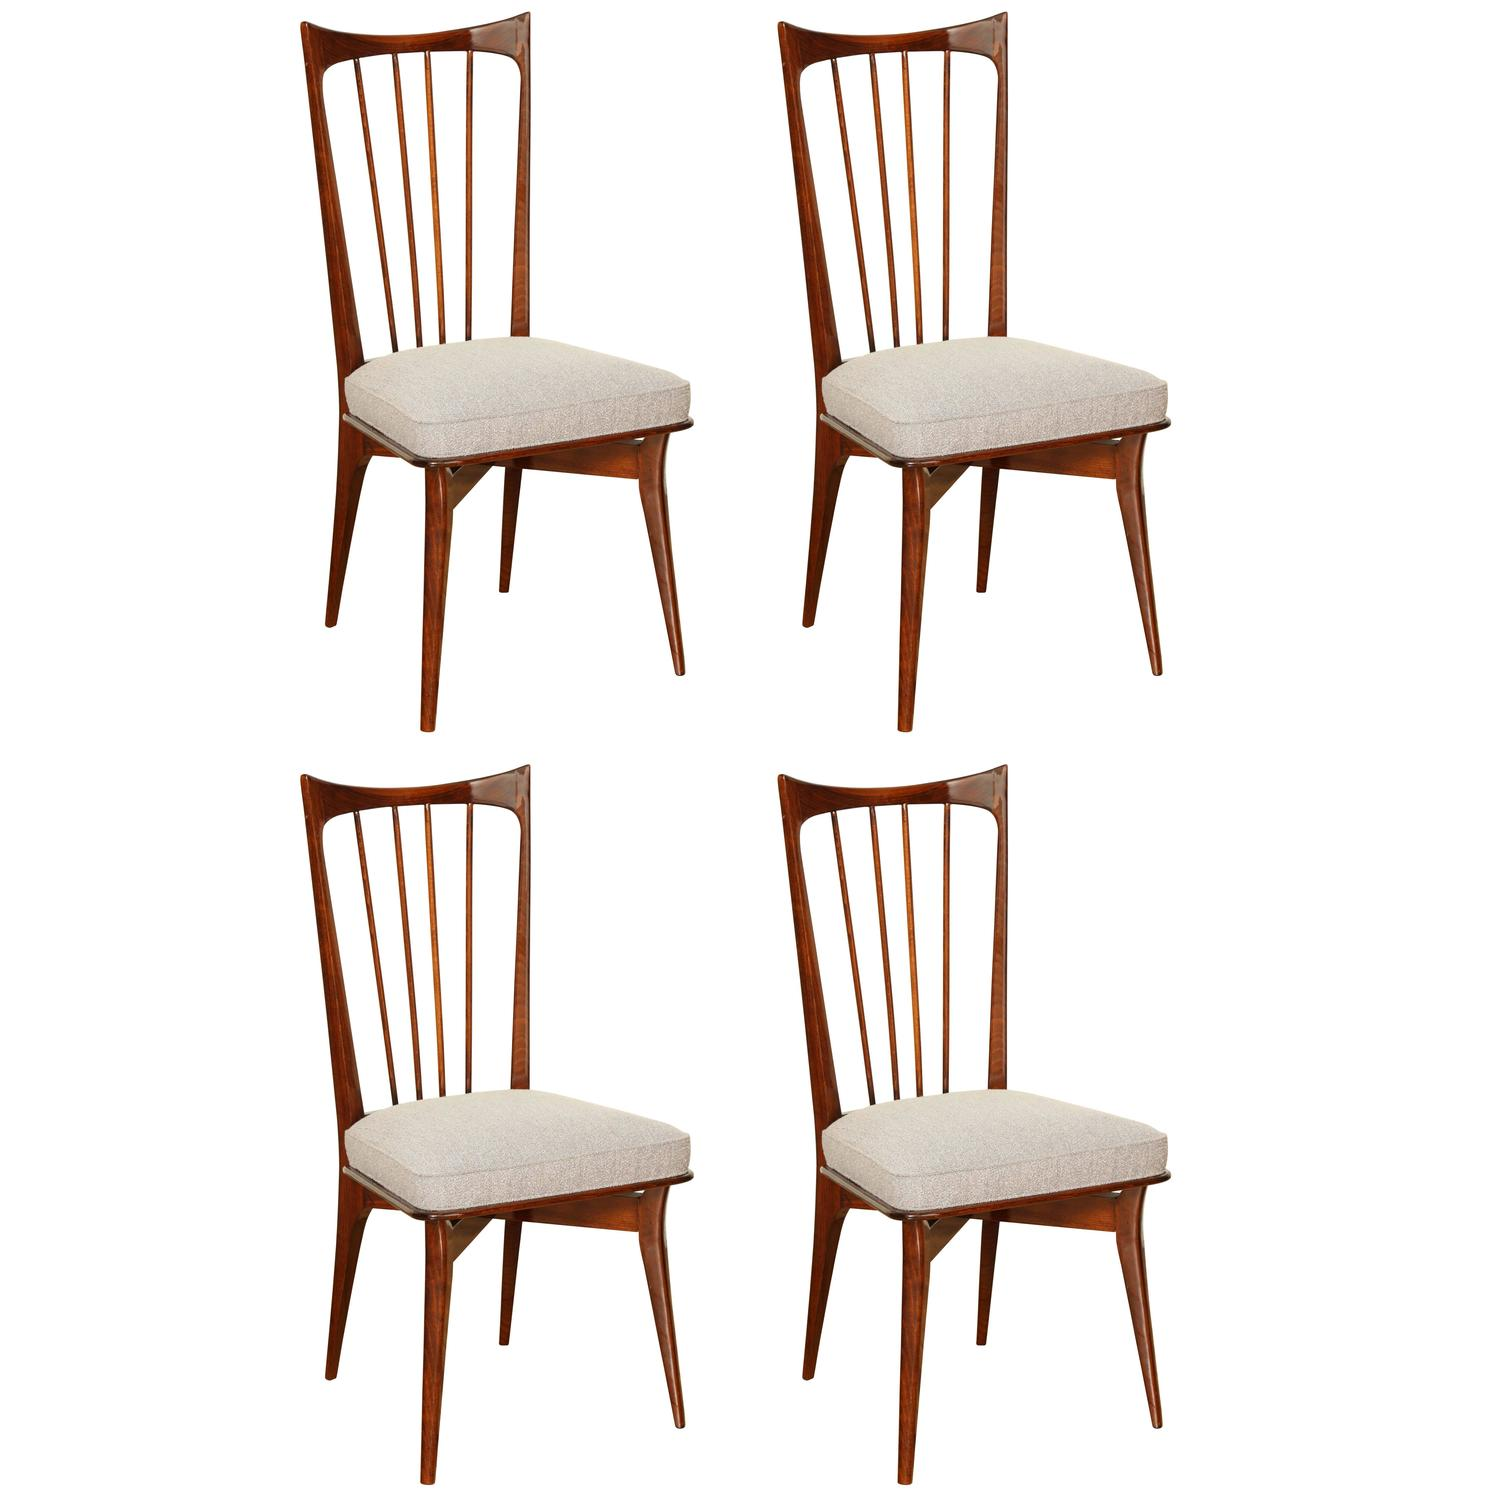 dining chairs for sale chair covers south wales mid century modern at 1stdibs